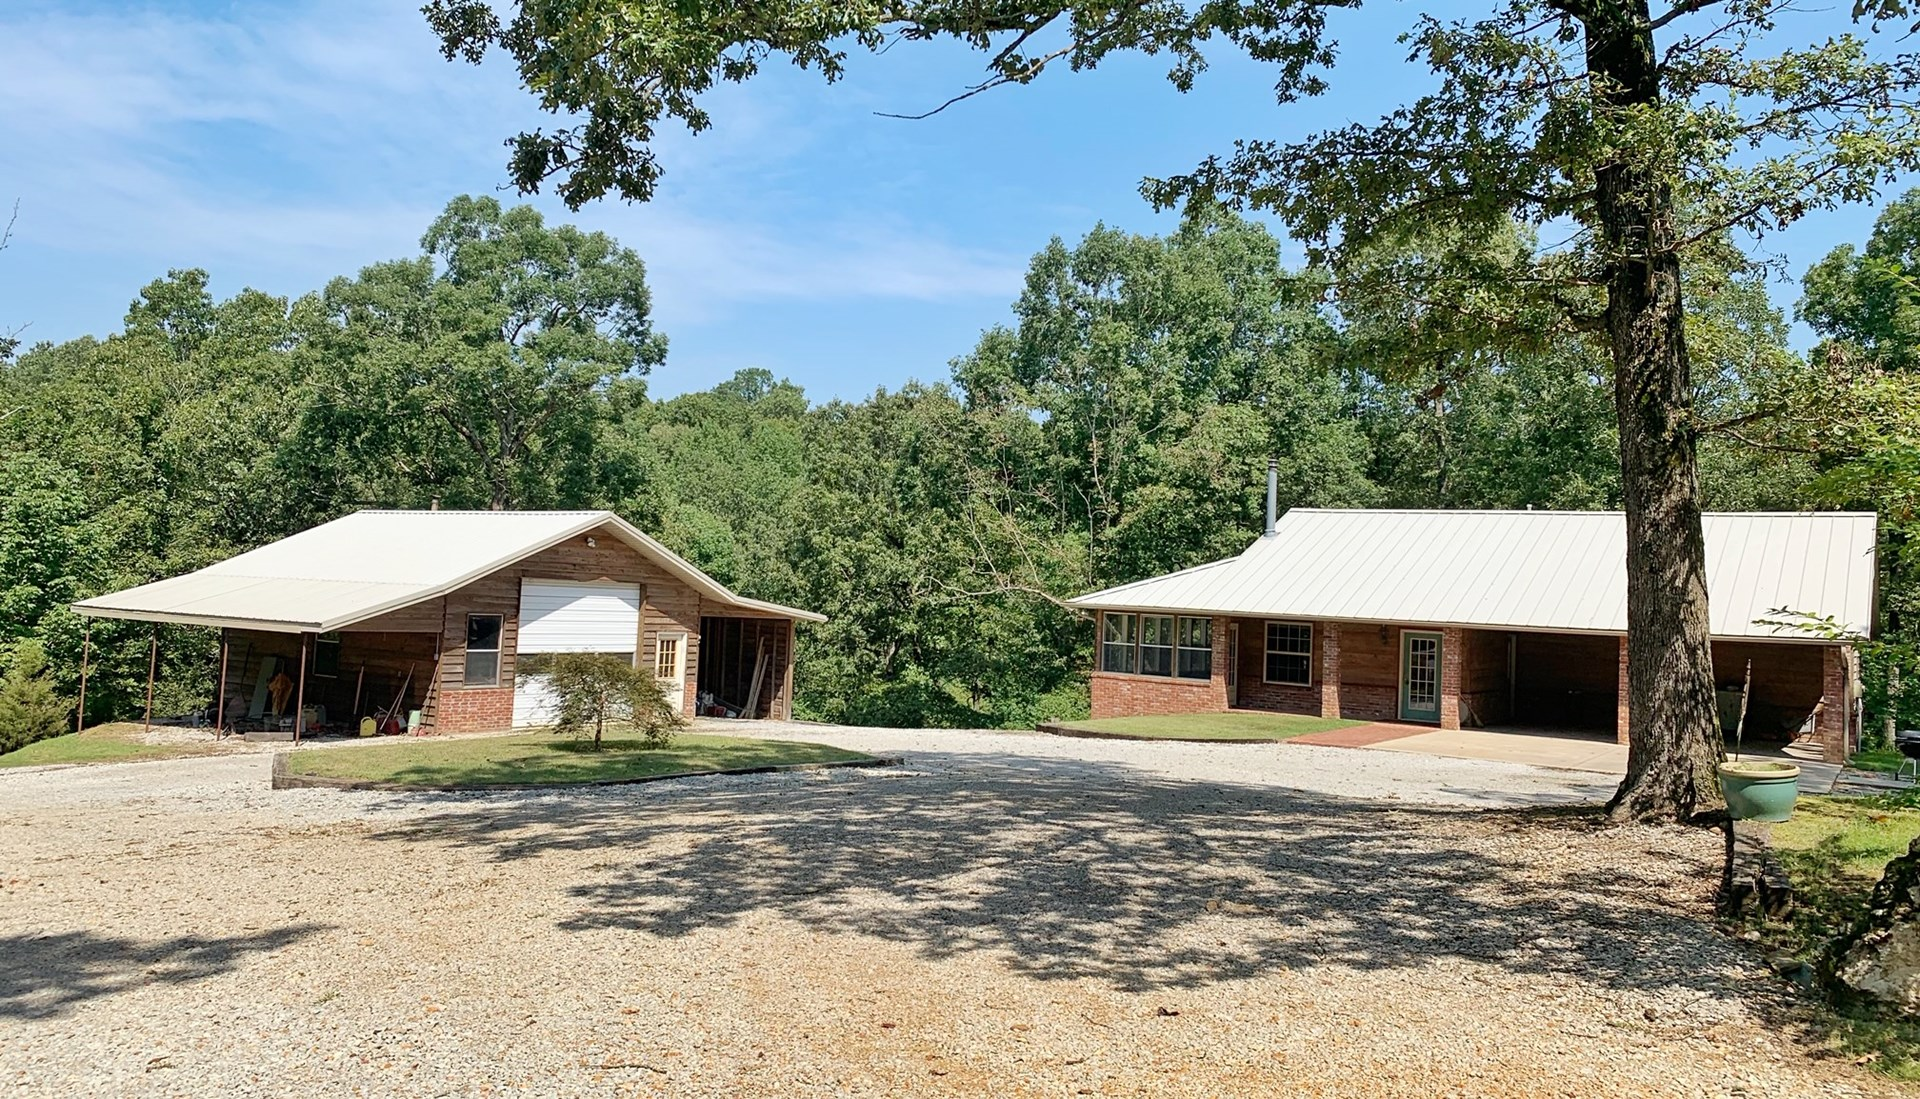 Pocahontas, AR Country Home With Acreage For Sale